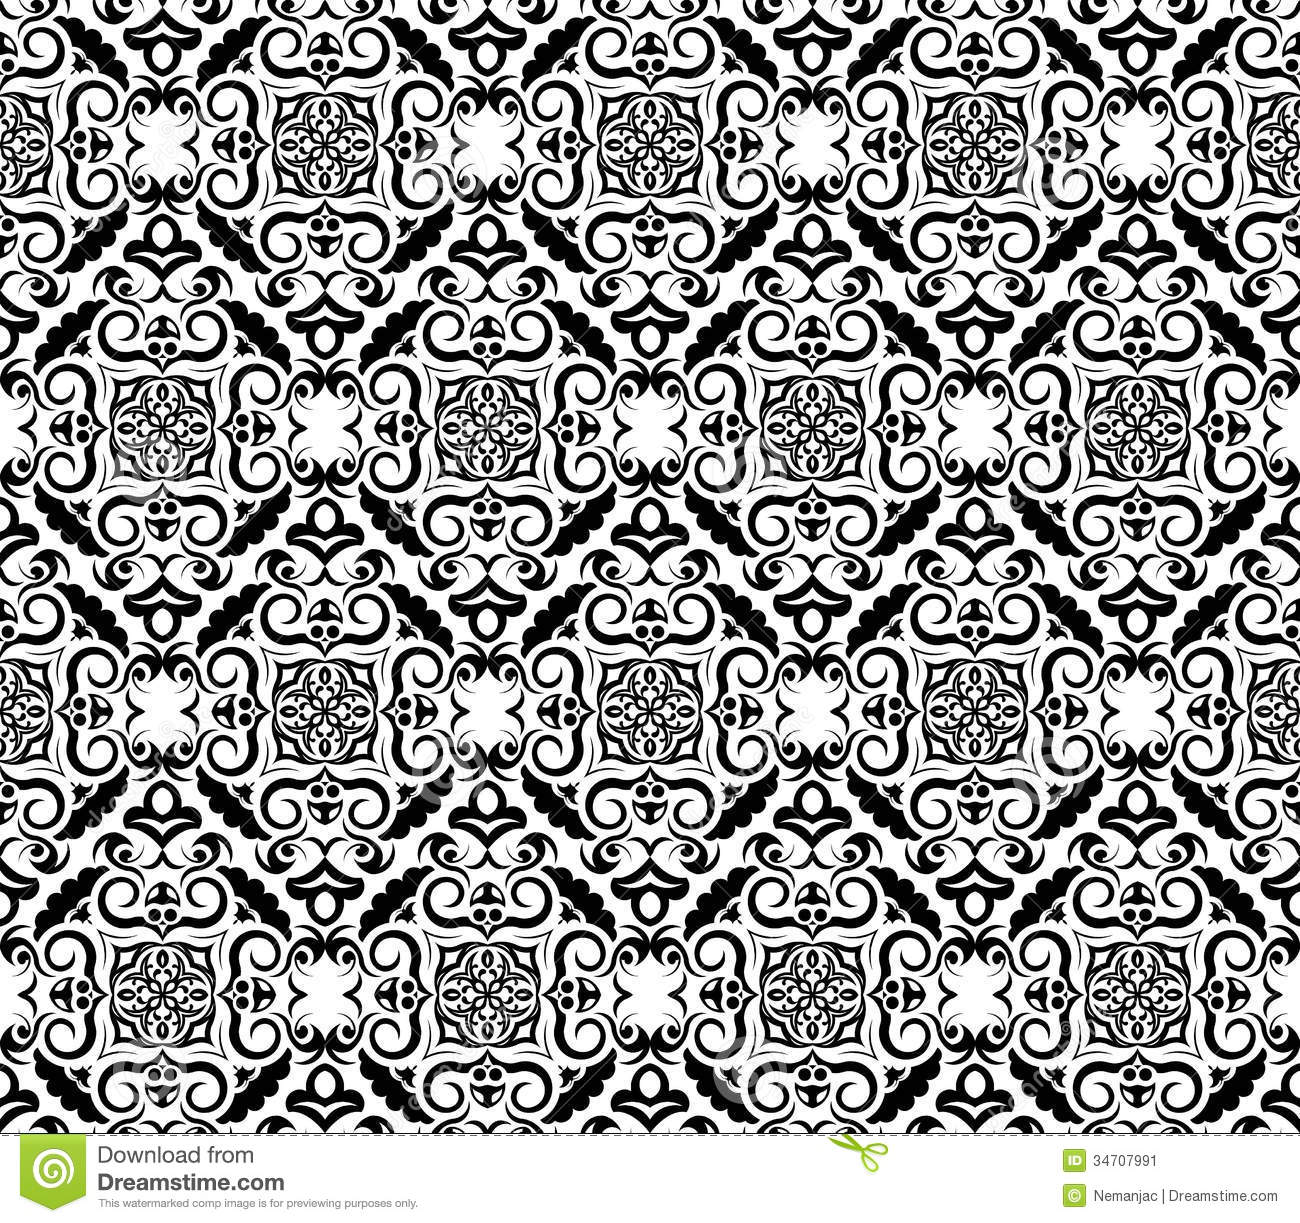 Vintage Black And White Wallpaper Stock Vector ...